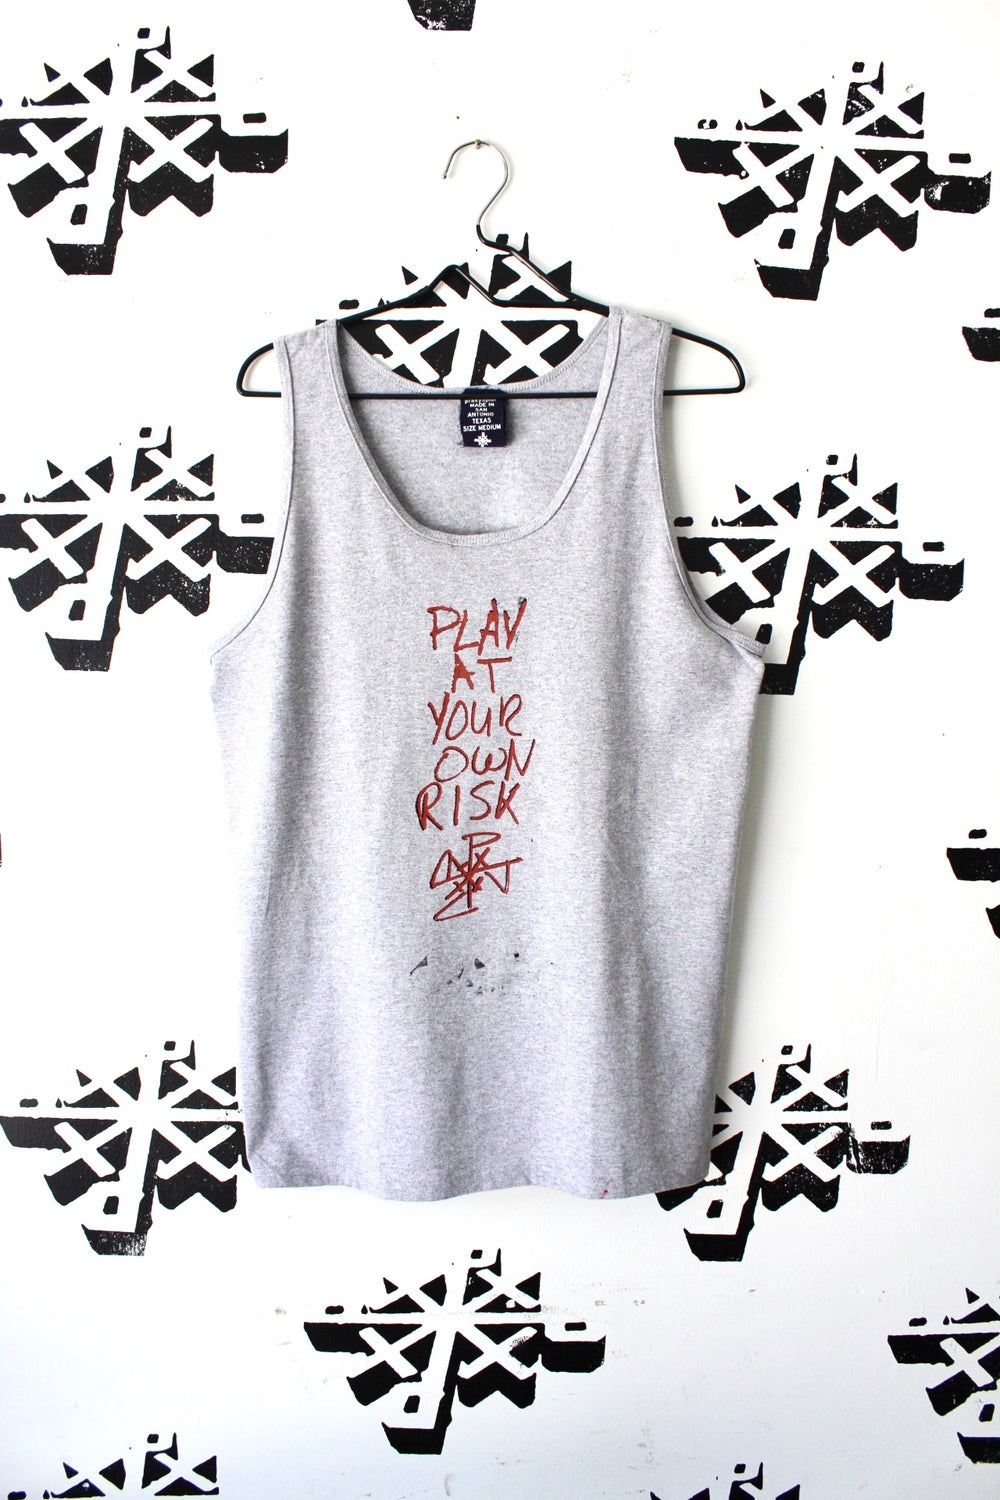 play at your own risk tank in gray